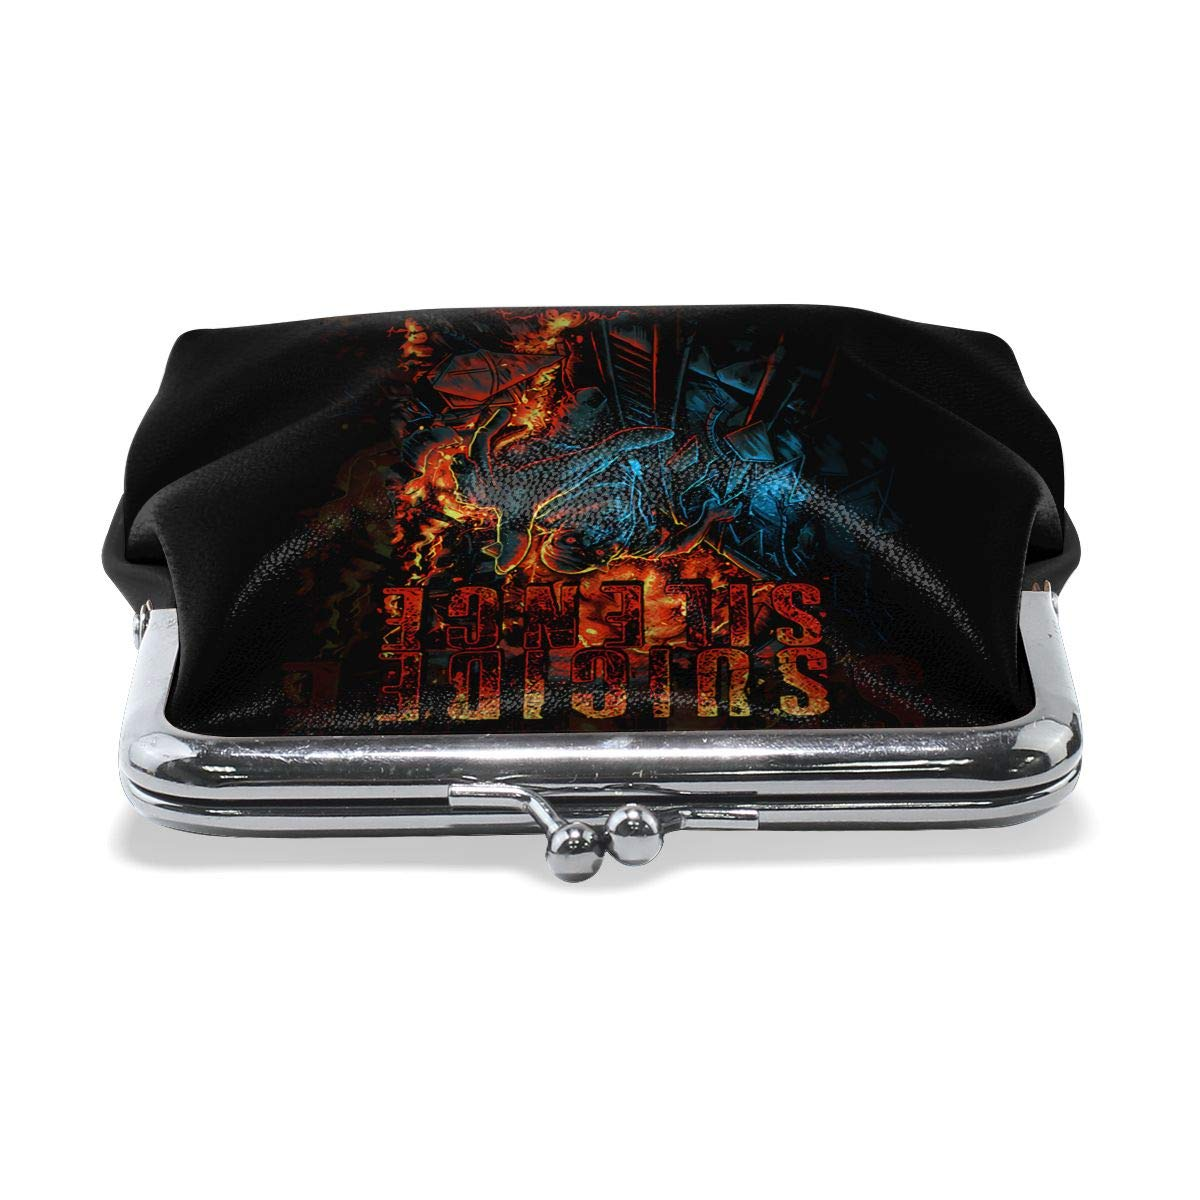 Suicide Silence Coin Purse Pouch Kiss-lock Change Purse Wallets